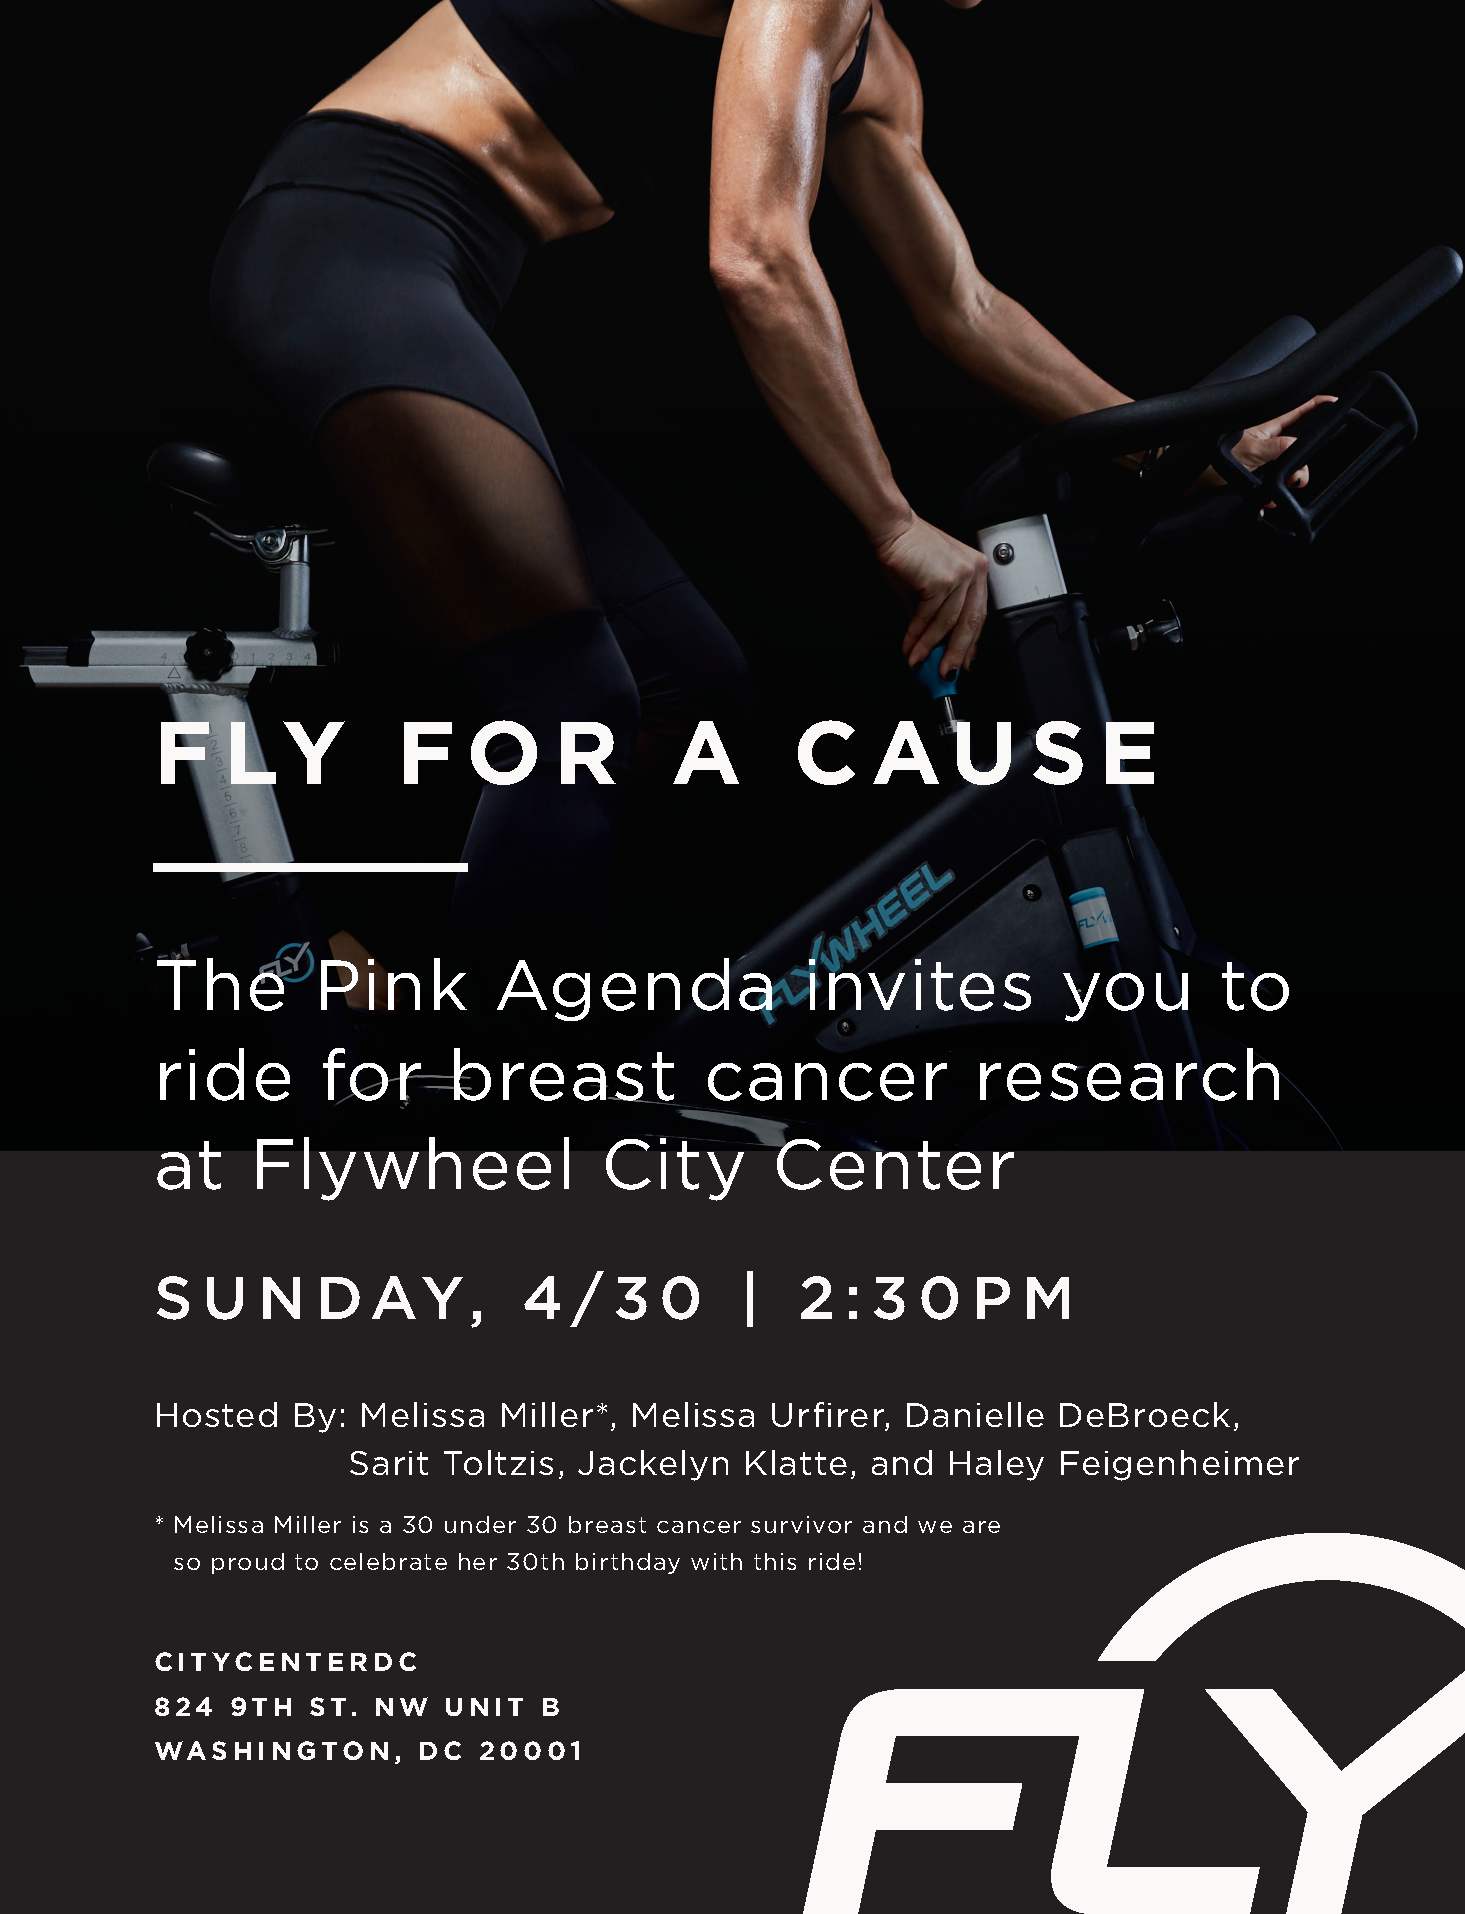 CCDC_FlyforaCause_BreastCancerResearch_(1).png